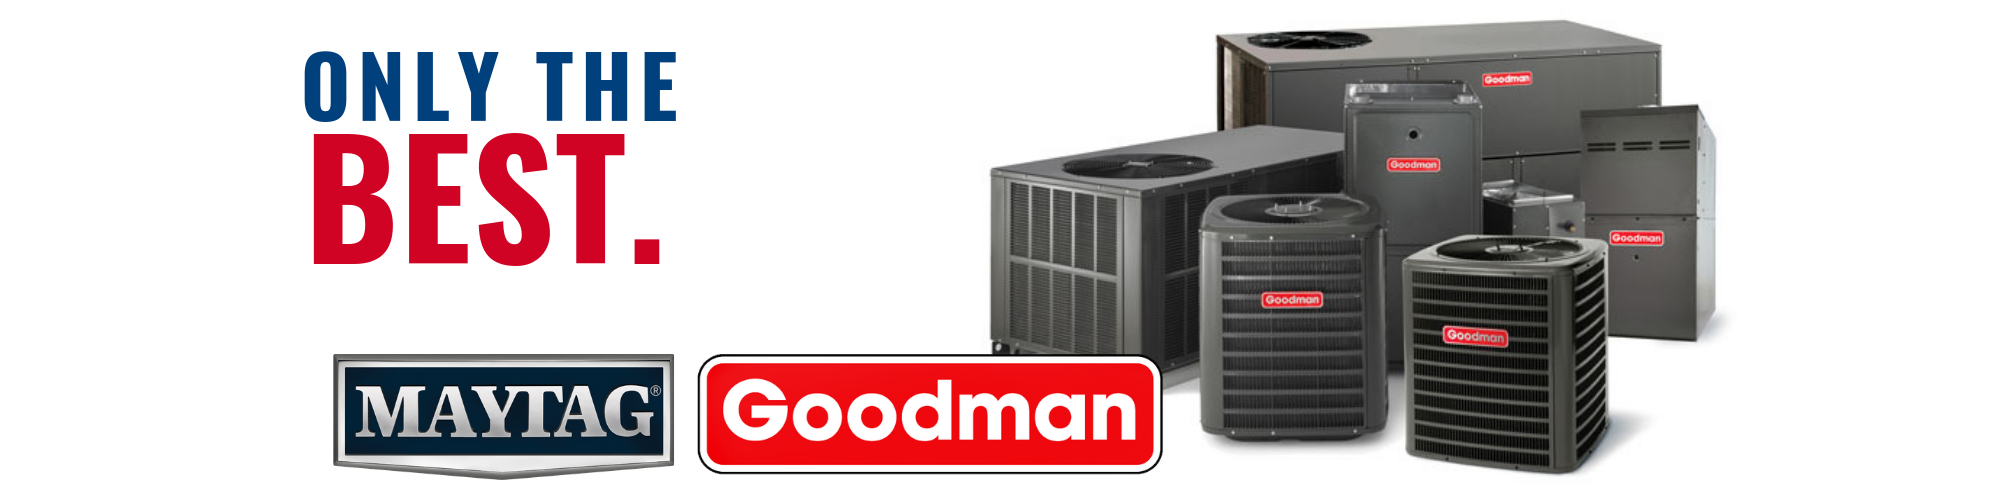 Only The Best HVAC Brands goodman and maytag